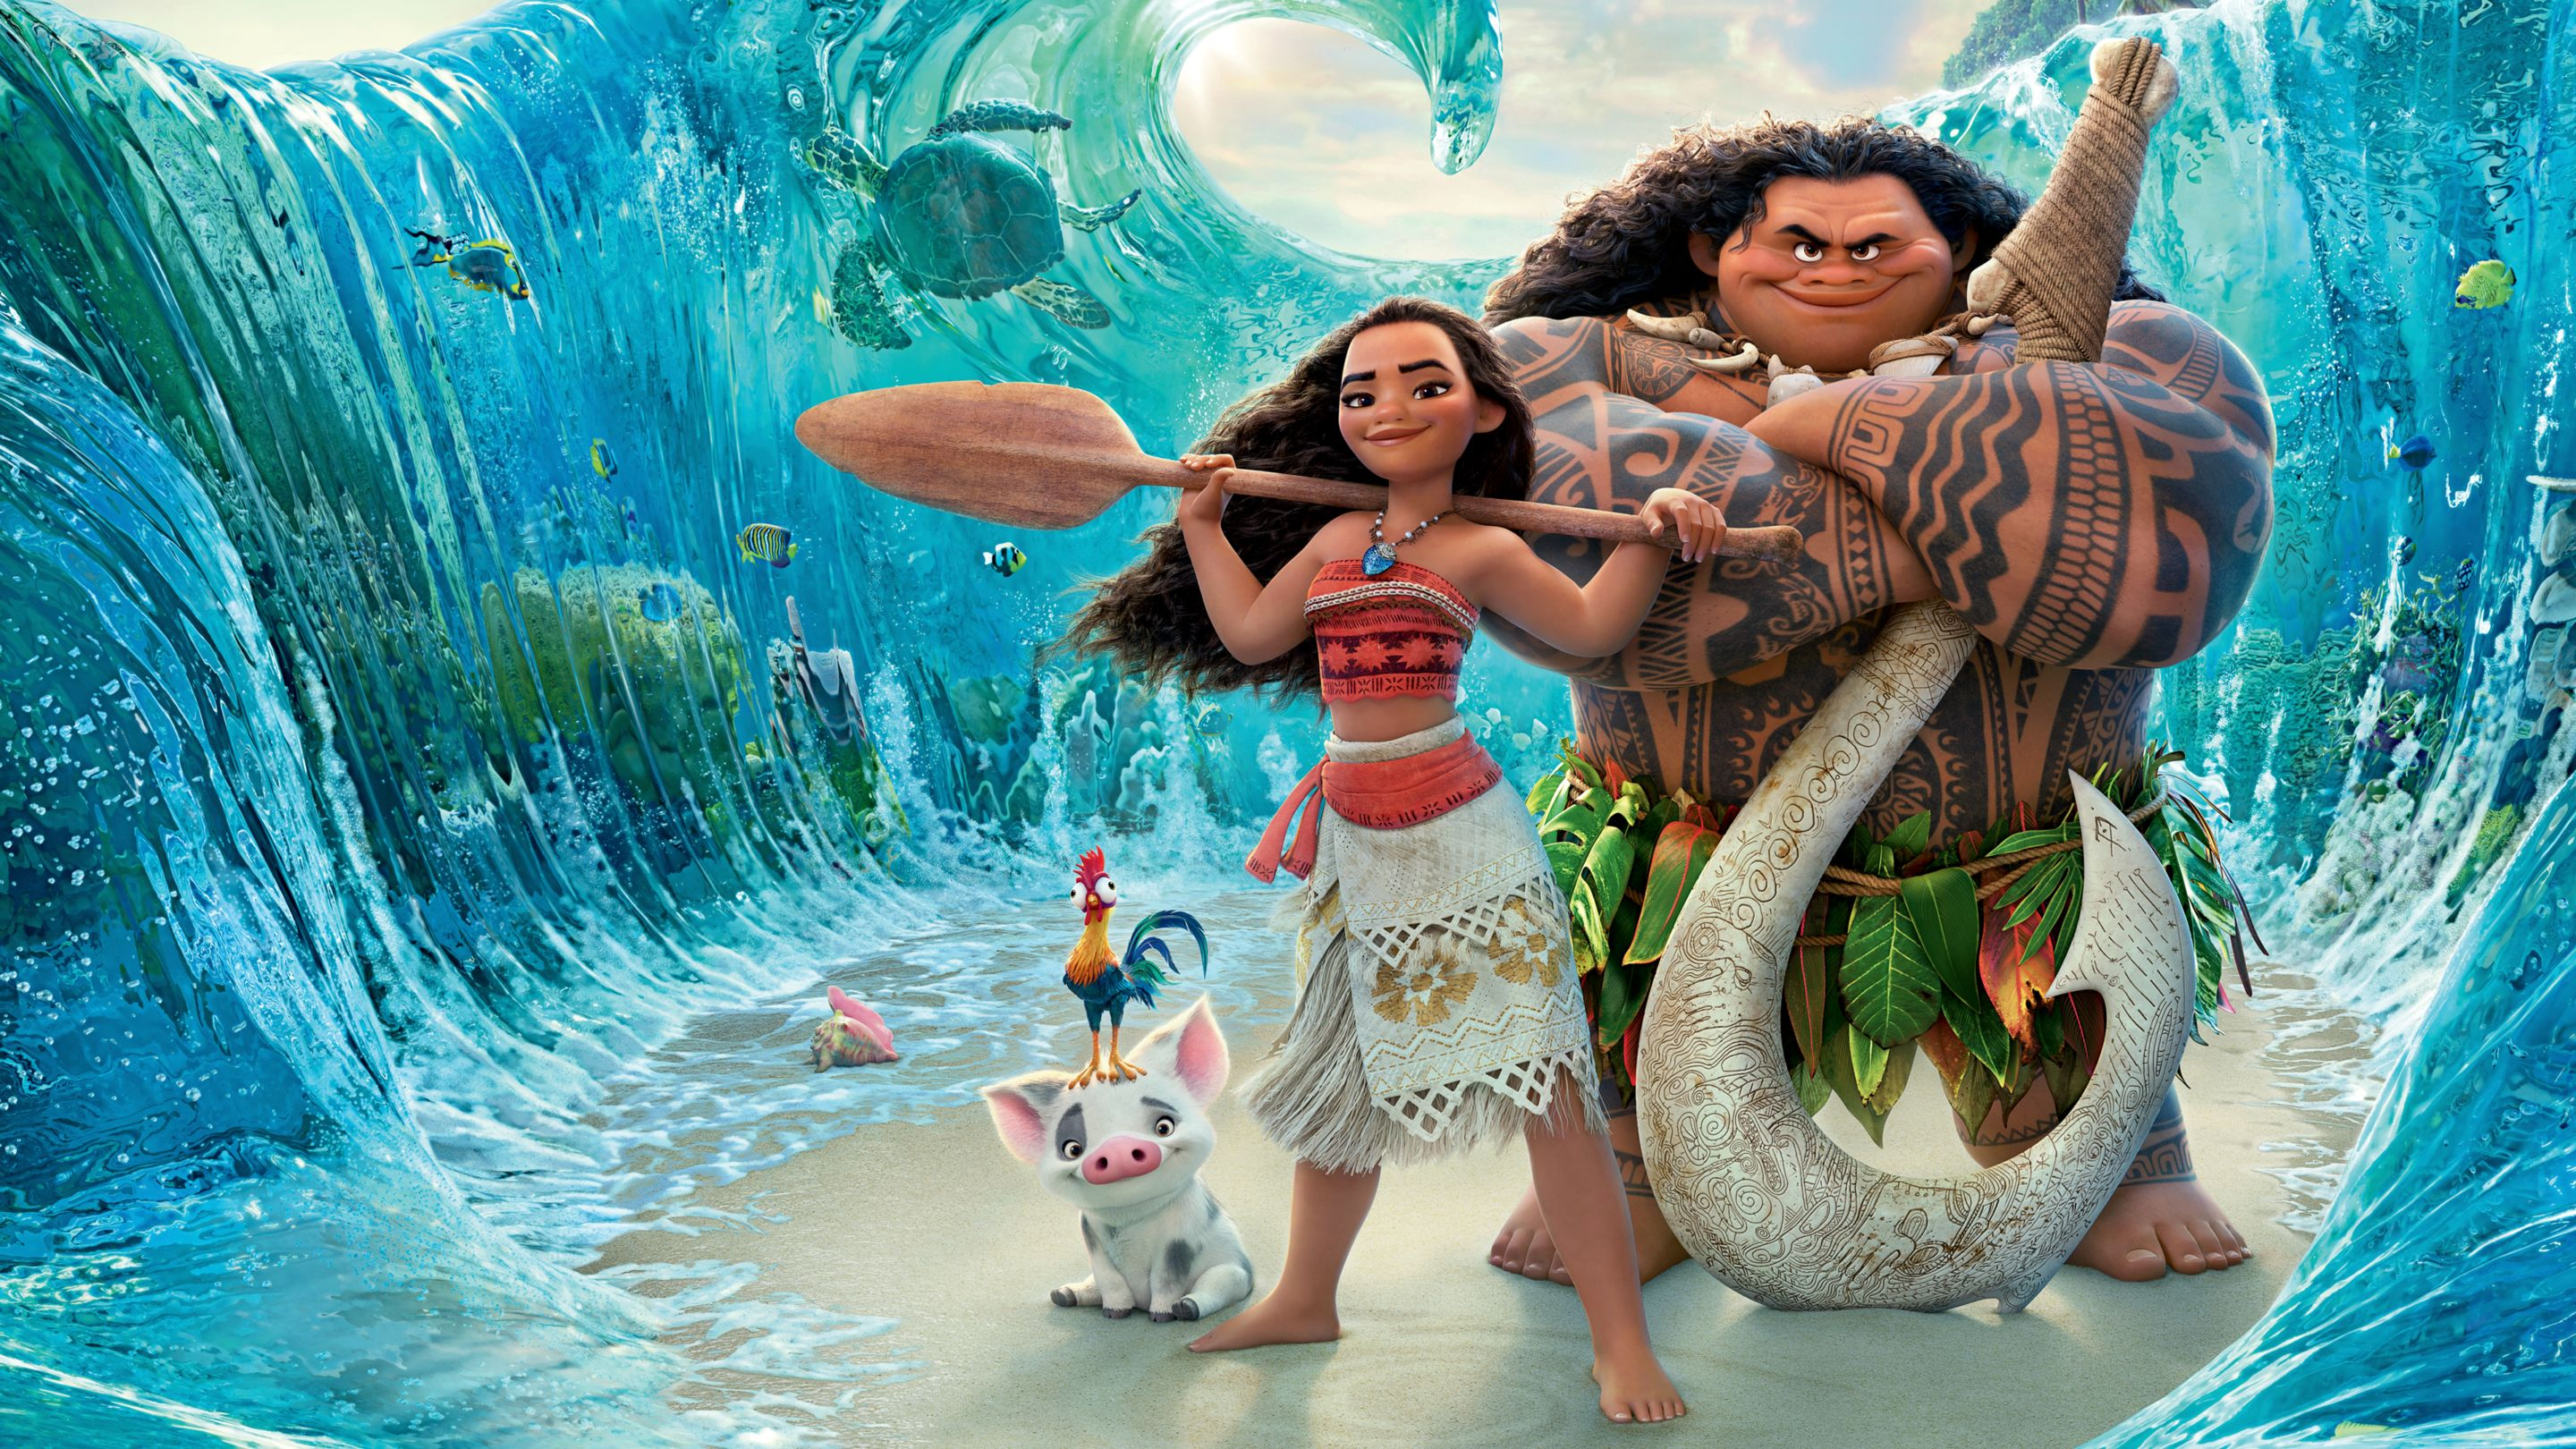 15 Greatest 2010's Disney Movies, Ranked By IMDb Ratings